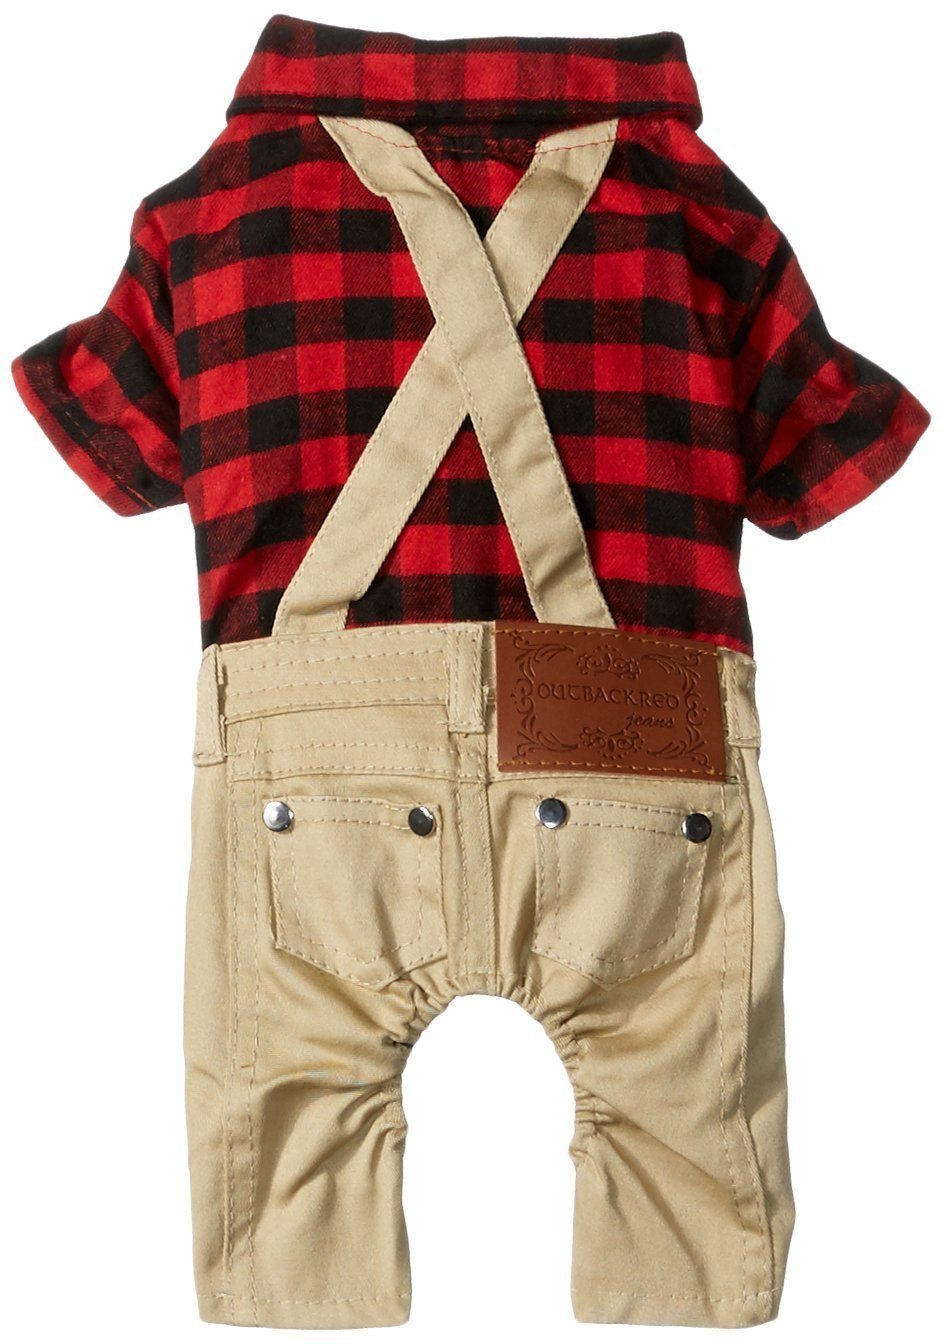 SMALLLEE_LUCKY_STORE Pet Clothes for Dogs Cat Red Plaid Shirts Sweater with Khaki Overalls Pants Jumpsuit Outfits XY000231-L